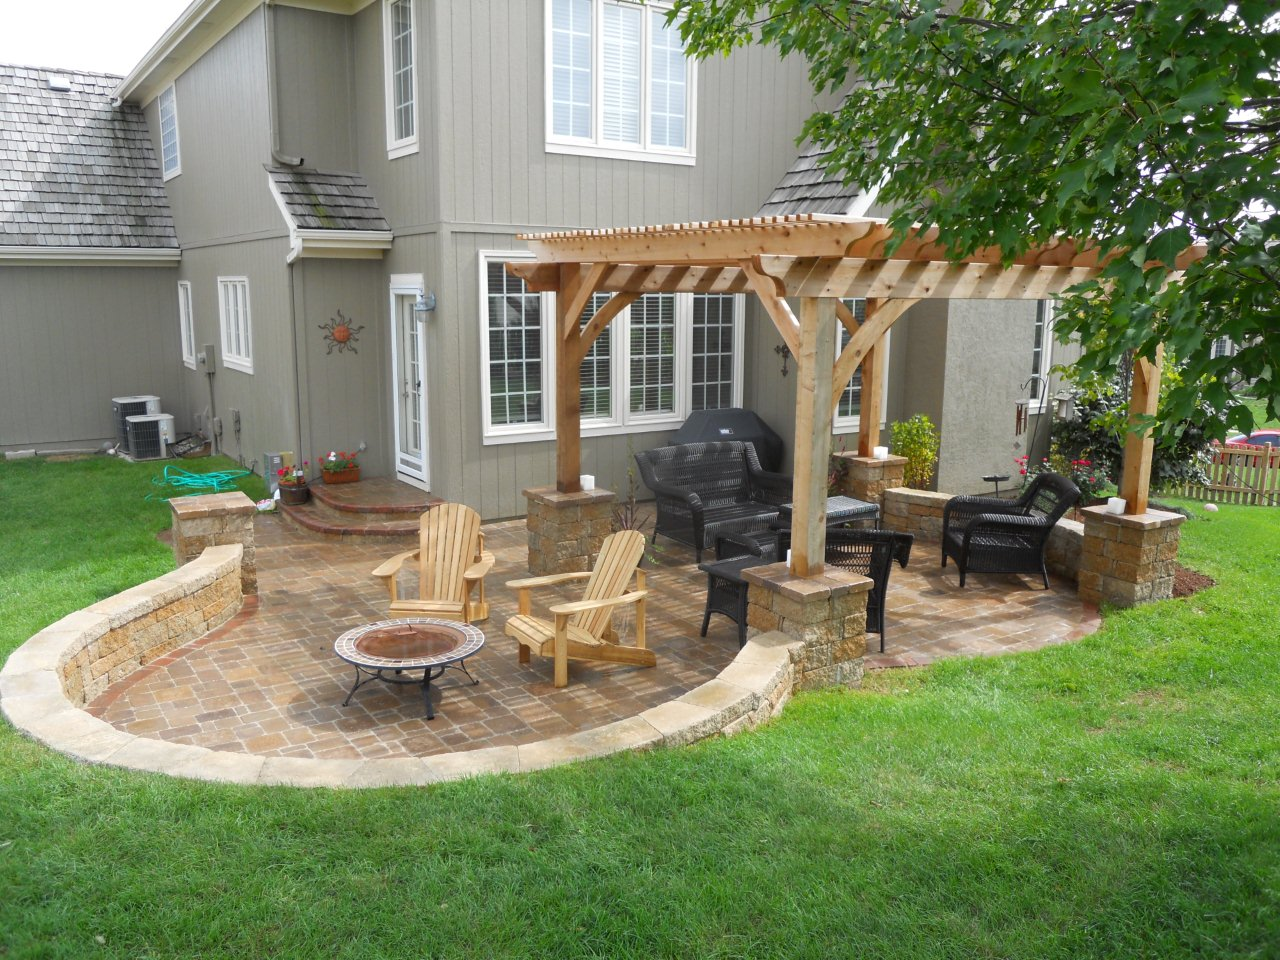 Flagstone Patio Pavers Design Ideas For Backyard Patio ... on Patio And Grass Garden Ideas id=22317